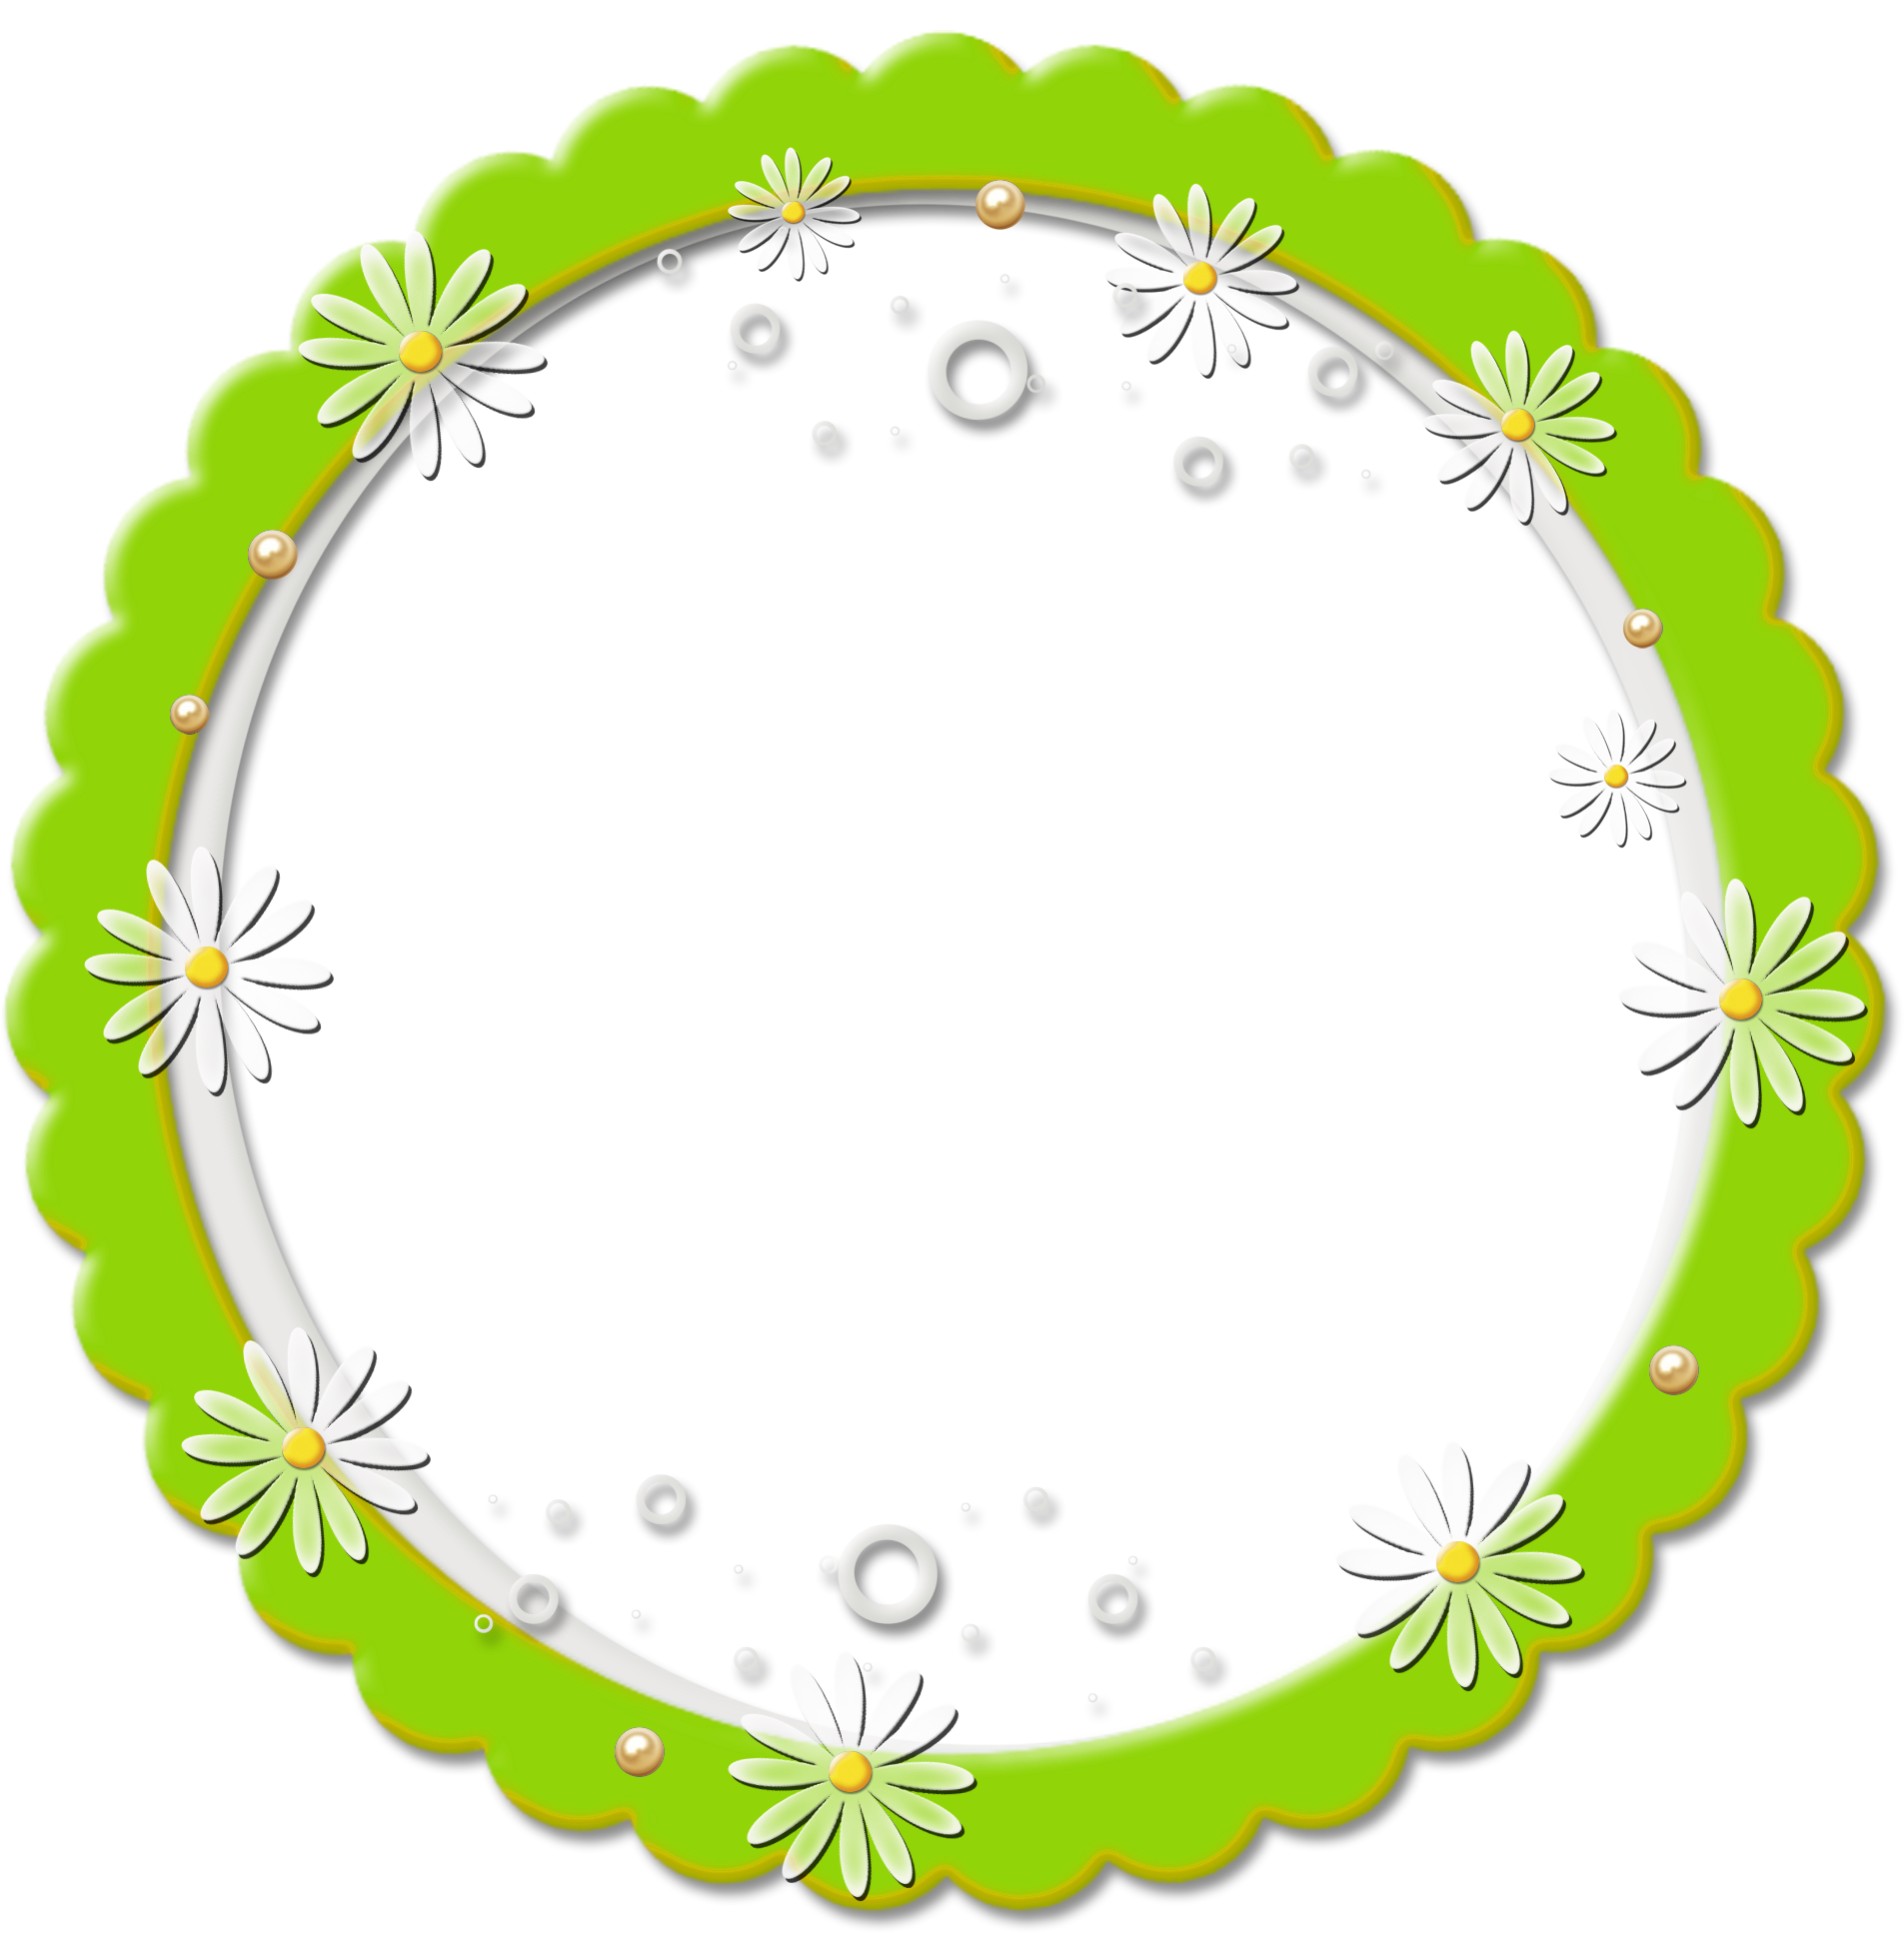 Cute png round gallery. Daisy clipart frame jpg library library